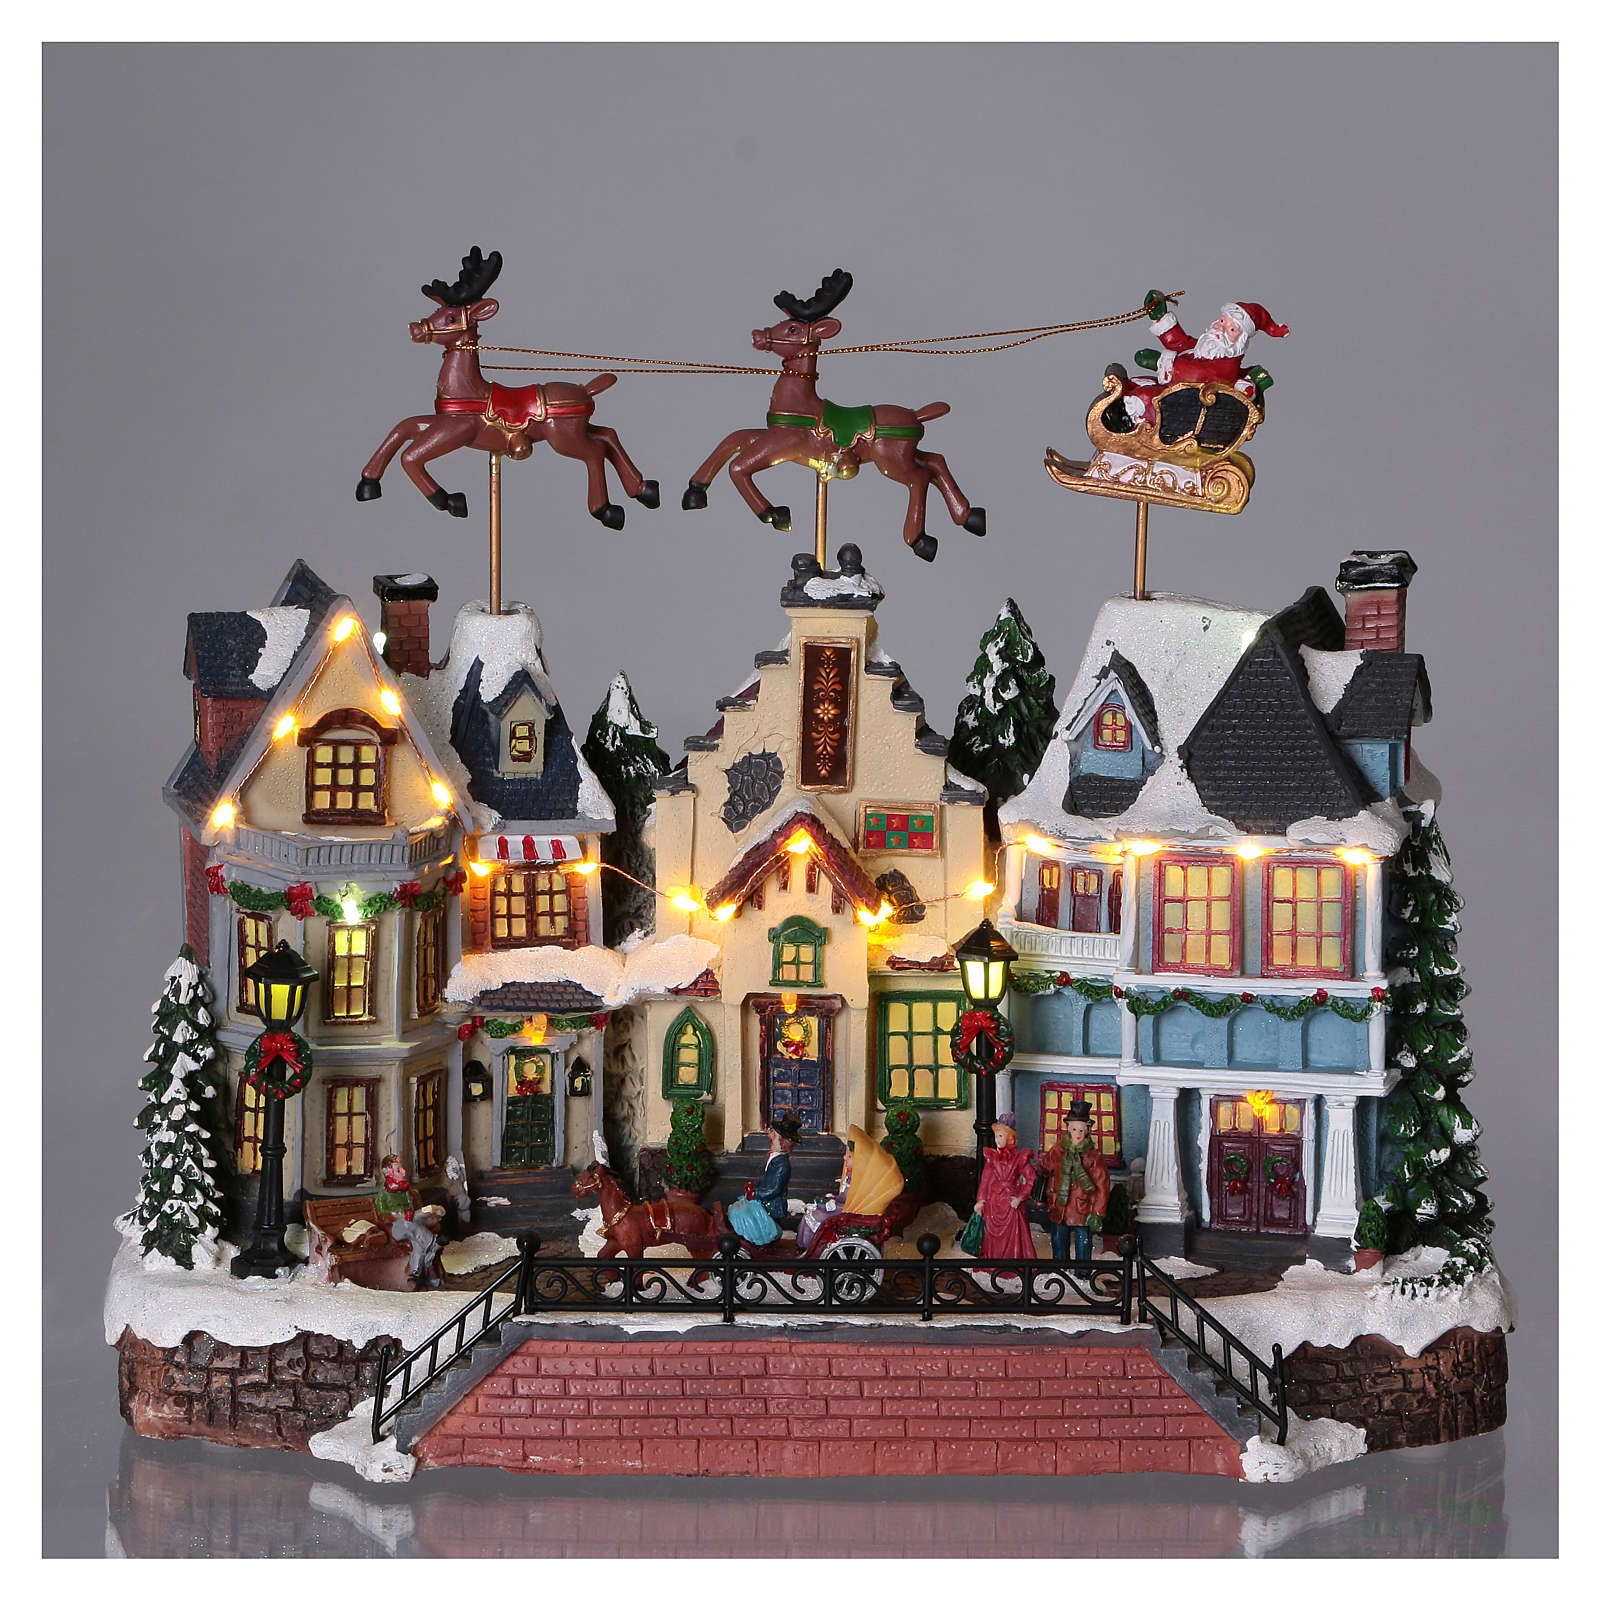 Santa Clause Christmas Village with moving Reindeer 30x35x20 lights music 3